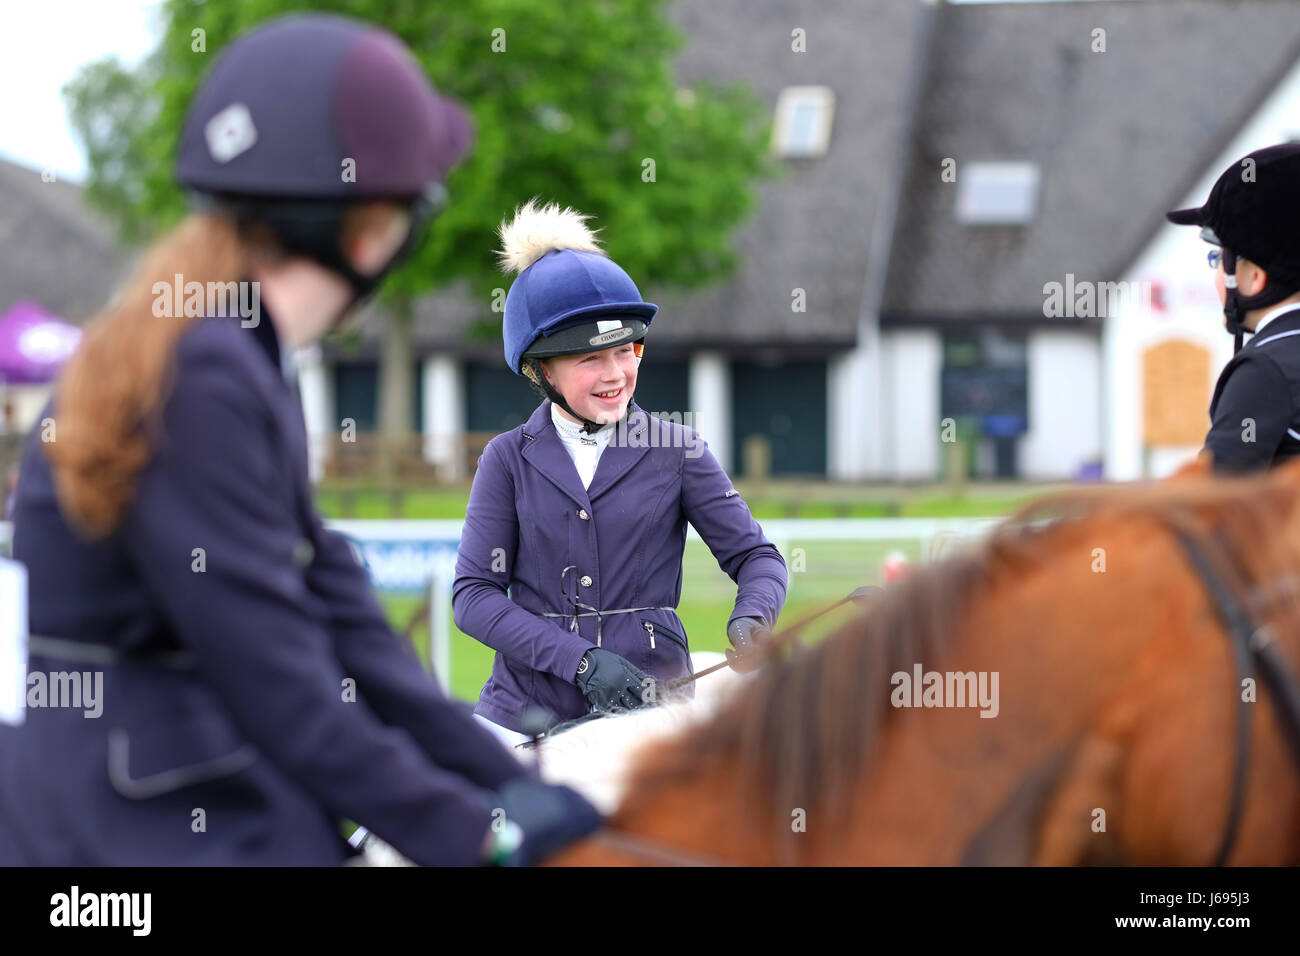 Royal Welsh Festival di Primavera, Builth Wells, Powys, Galles - Maggio 2017 - concorrenti nella junior show jumping Immagini Stock